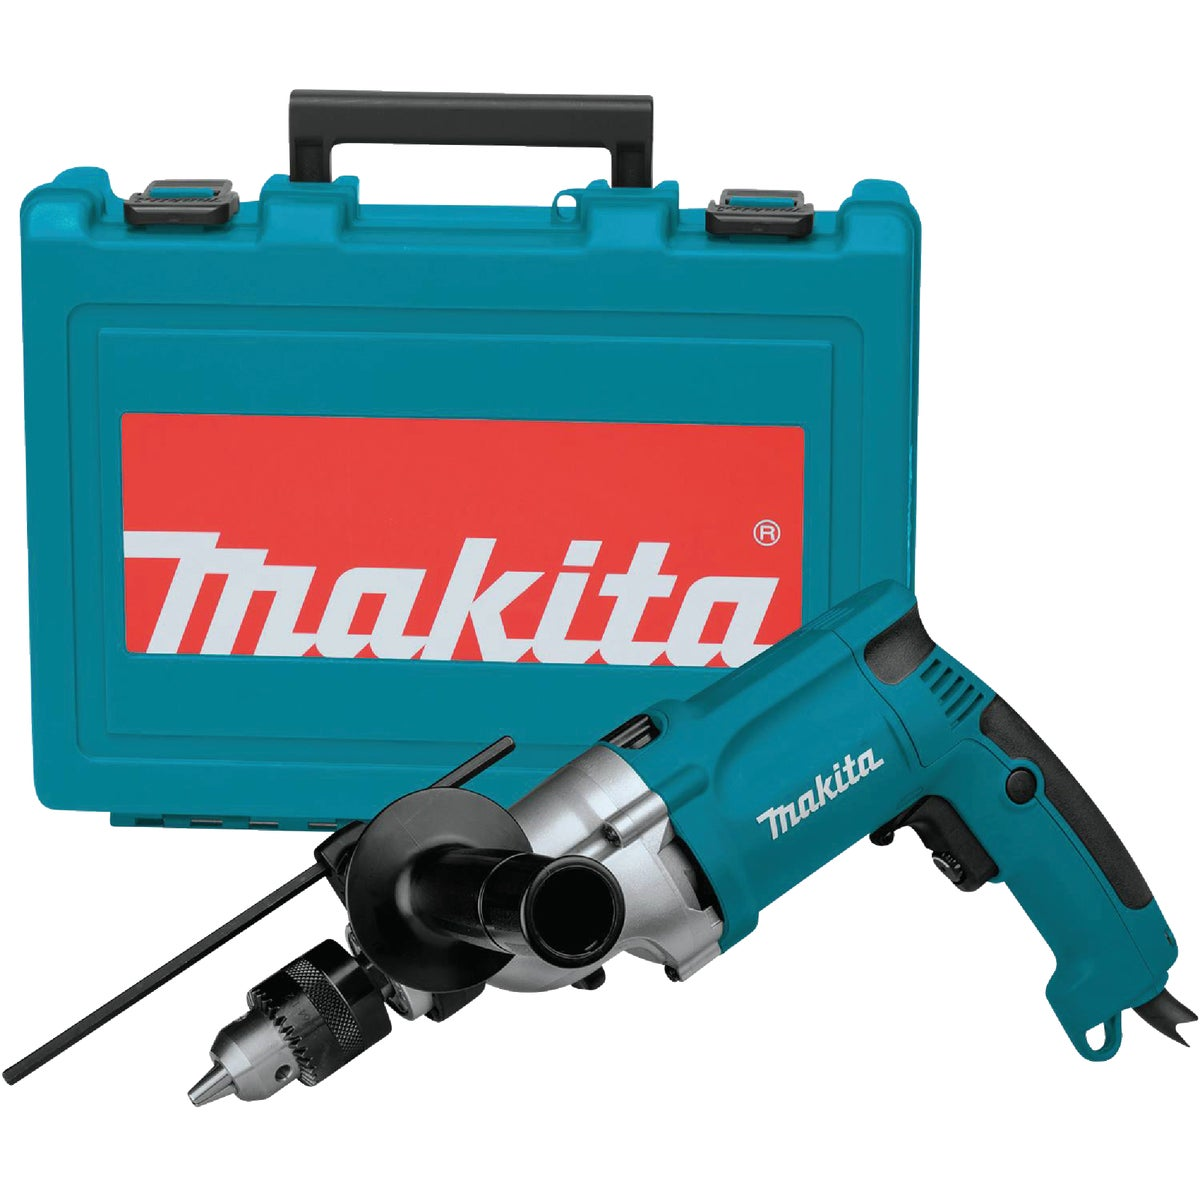 "3/4"" HAMMER DRILL - HP2050F by Makita Usa Inc"